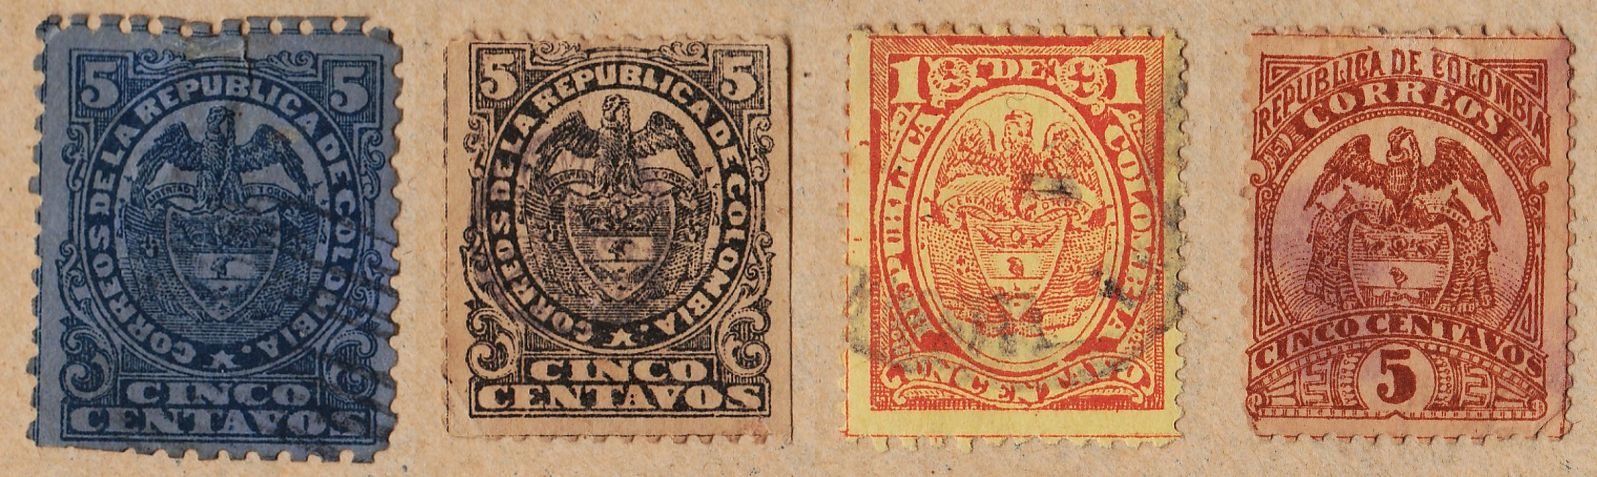 An introduction to the history of the postage stamps as a classic